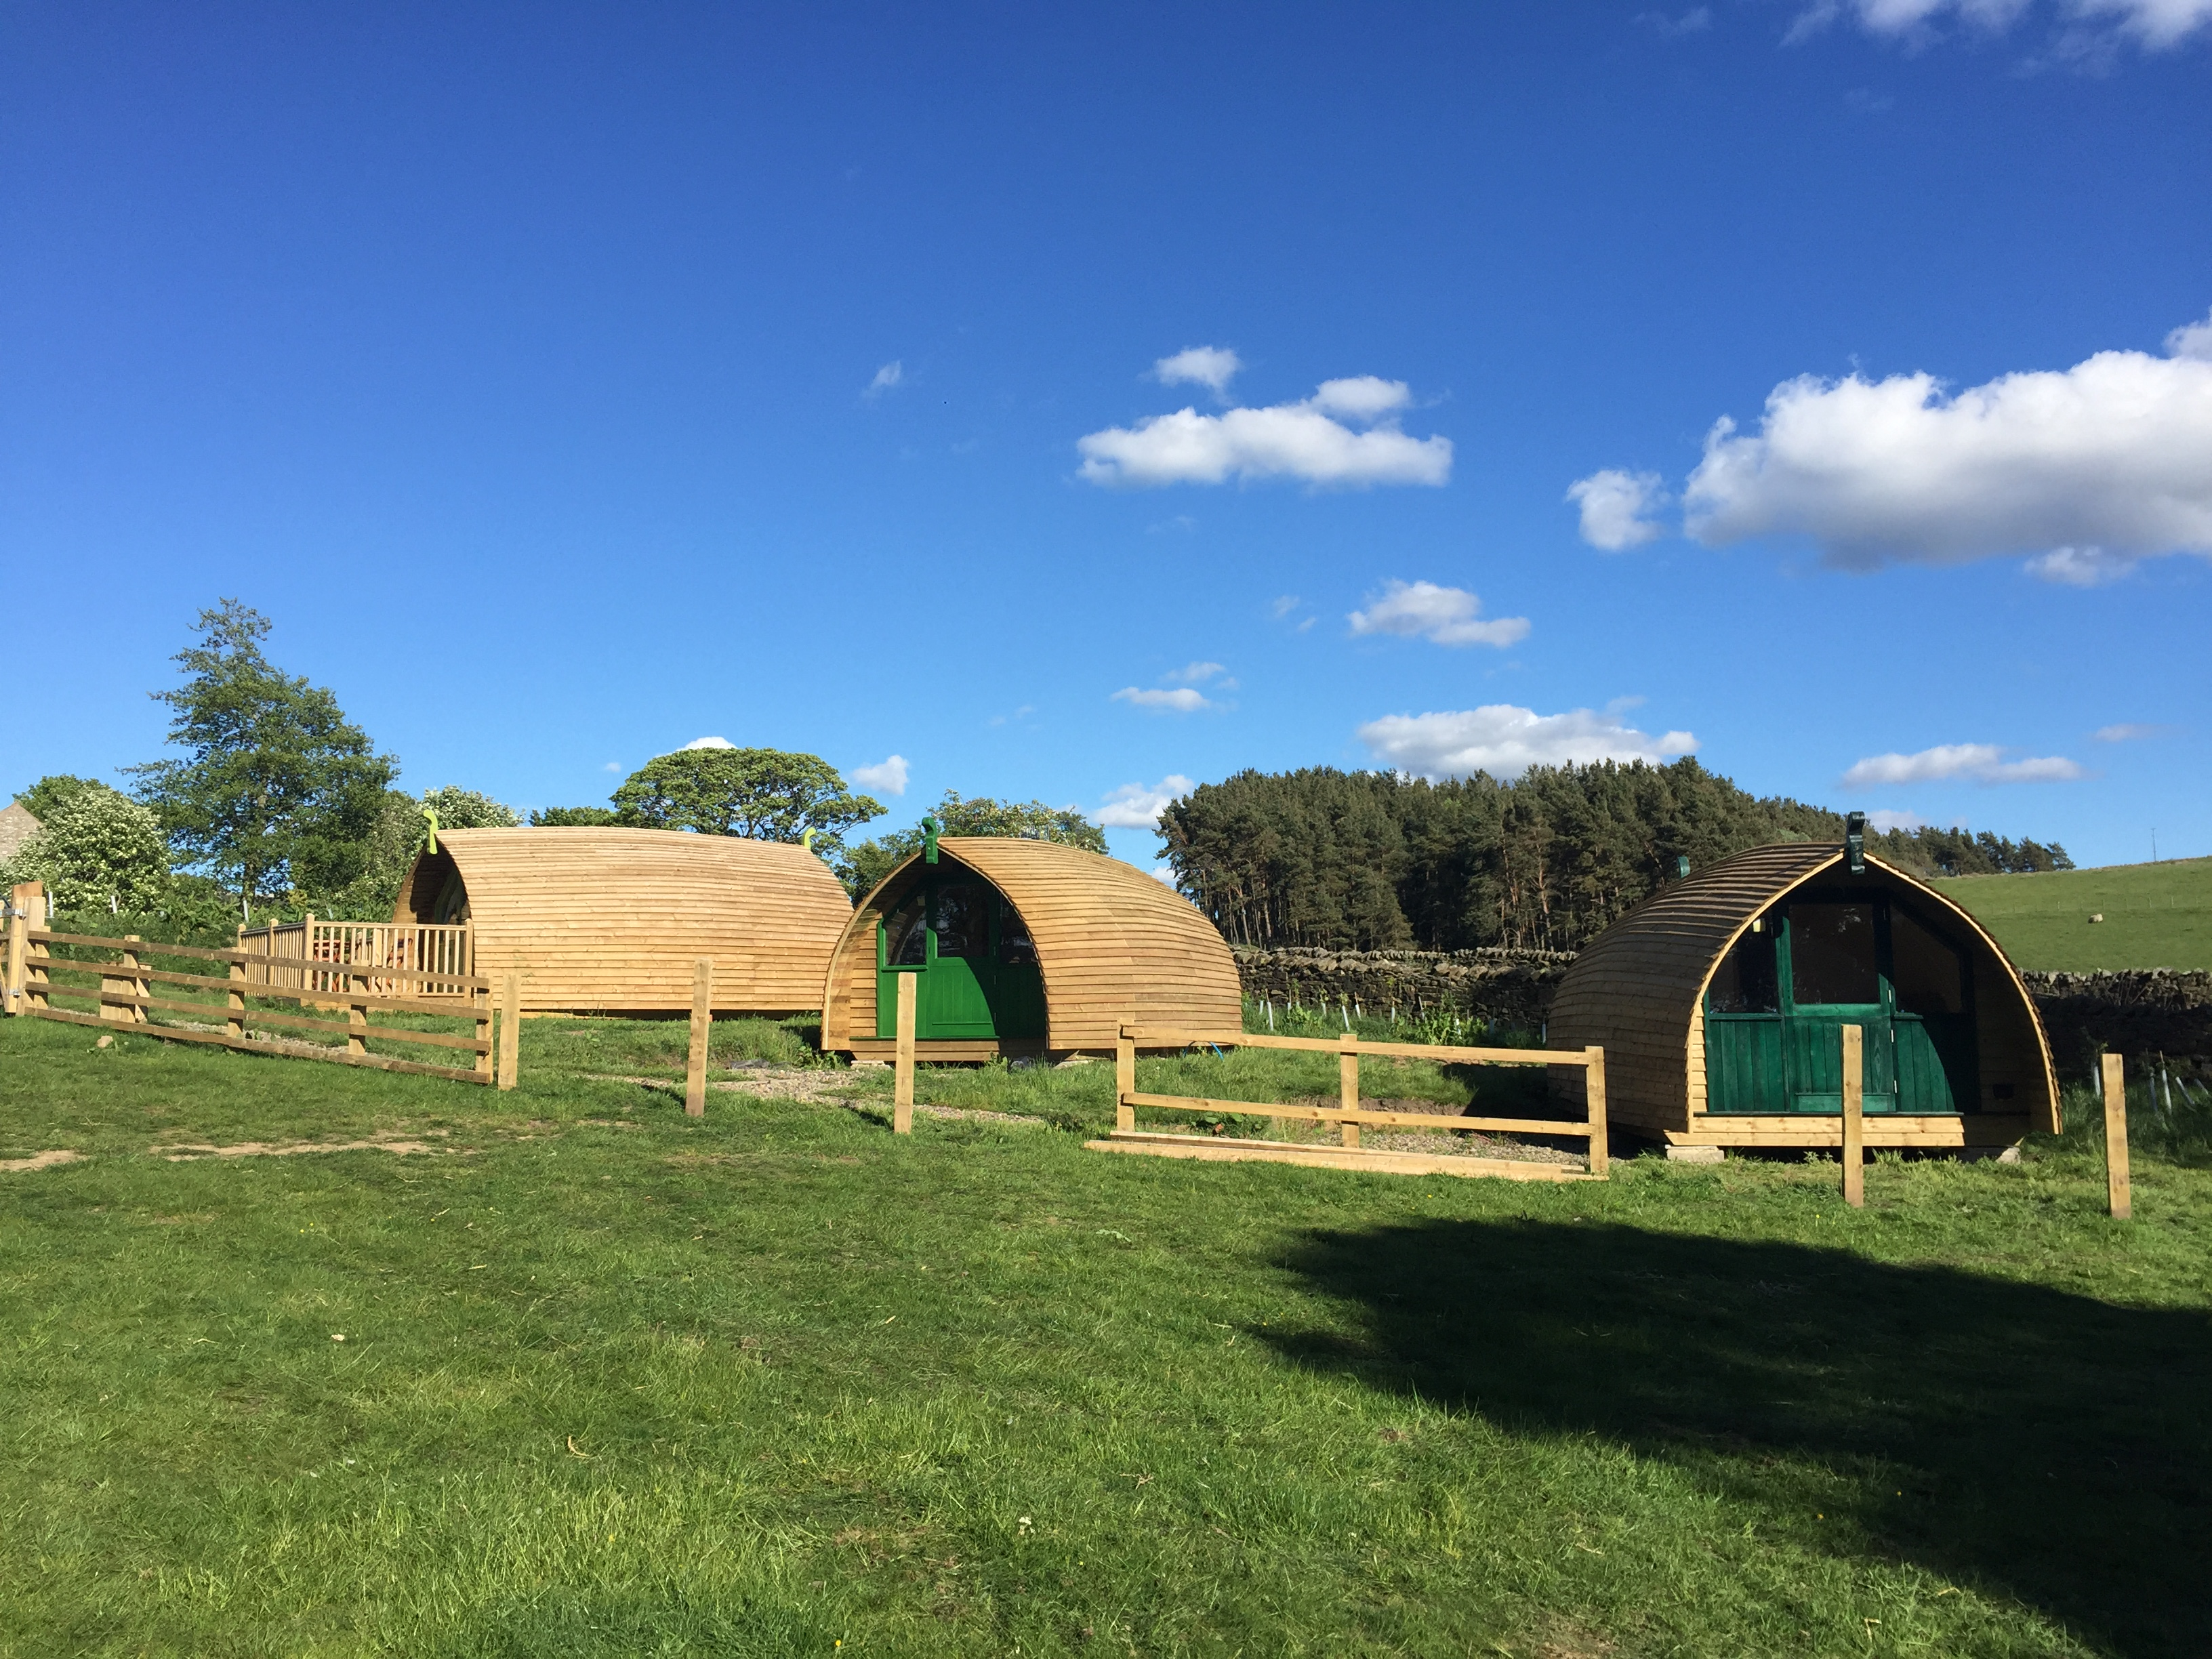 The new cabins on site